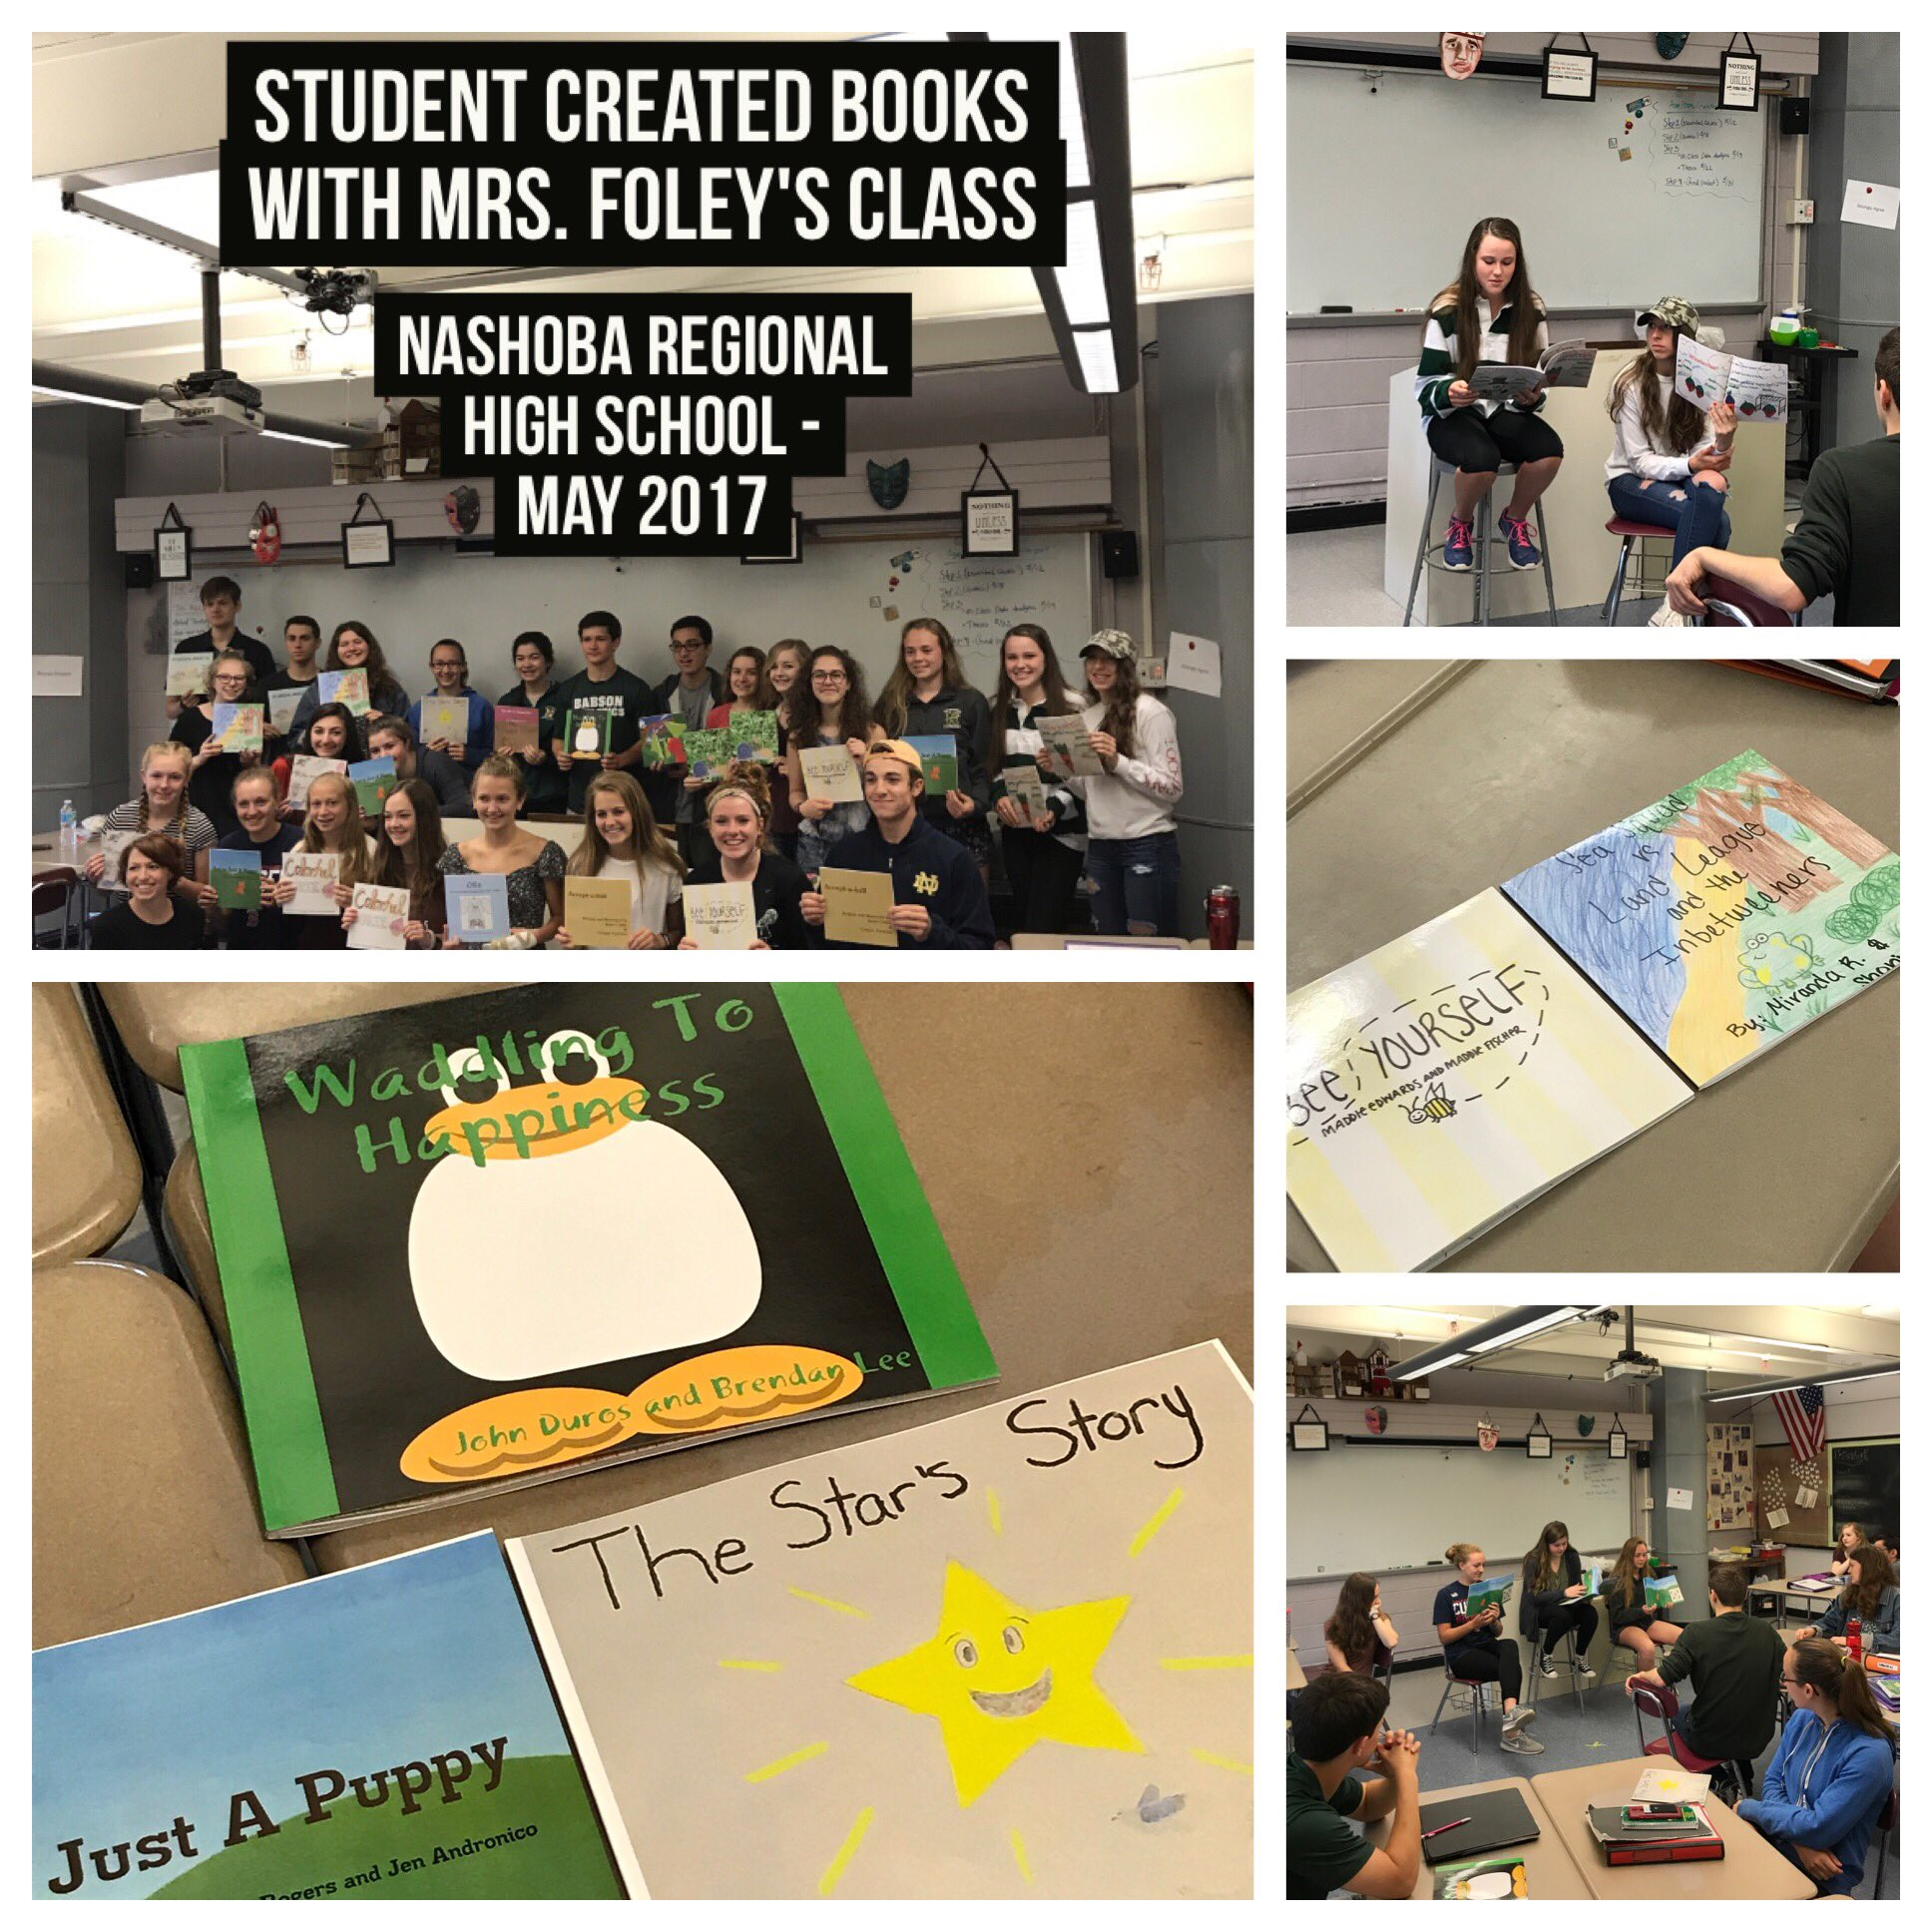 Children's illustrated books w/ @FoleyProcko class. Amazing work! https://t.co/ynaAwNyQVn